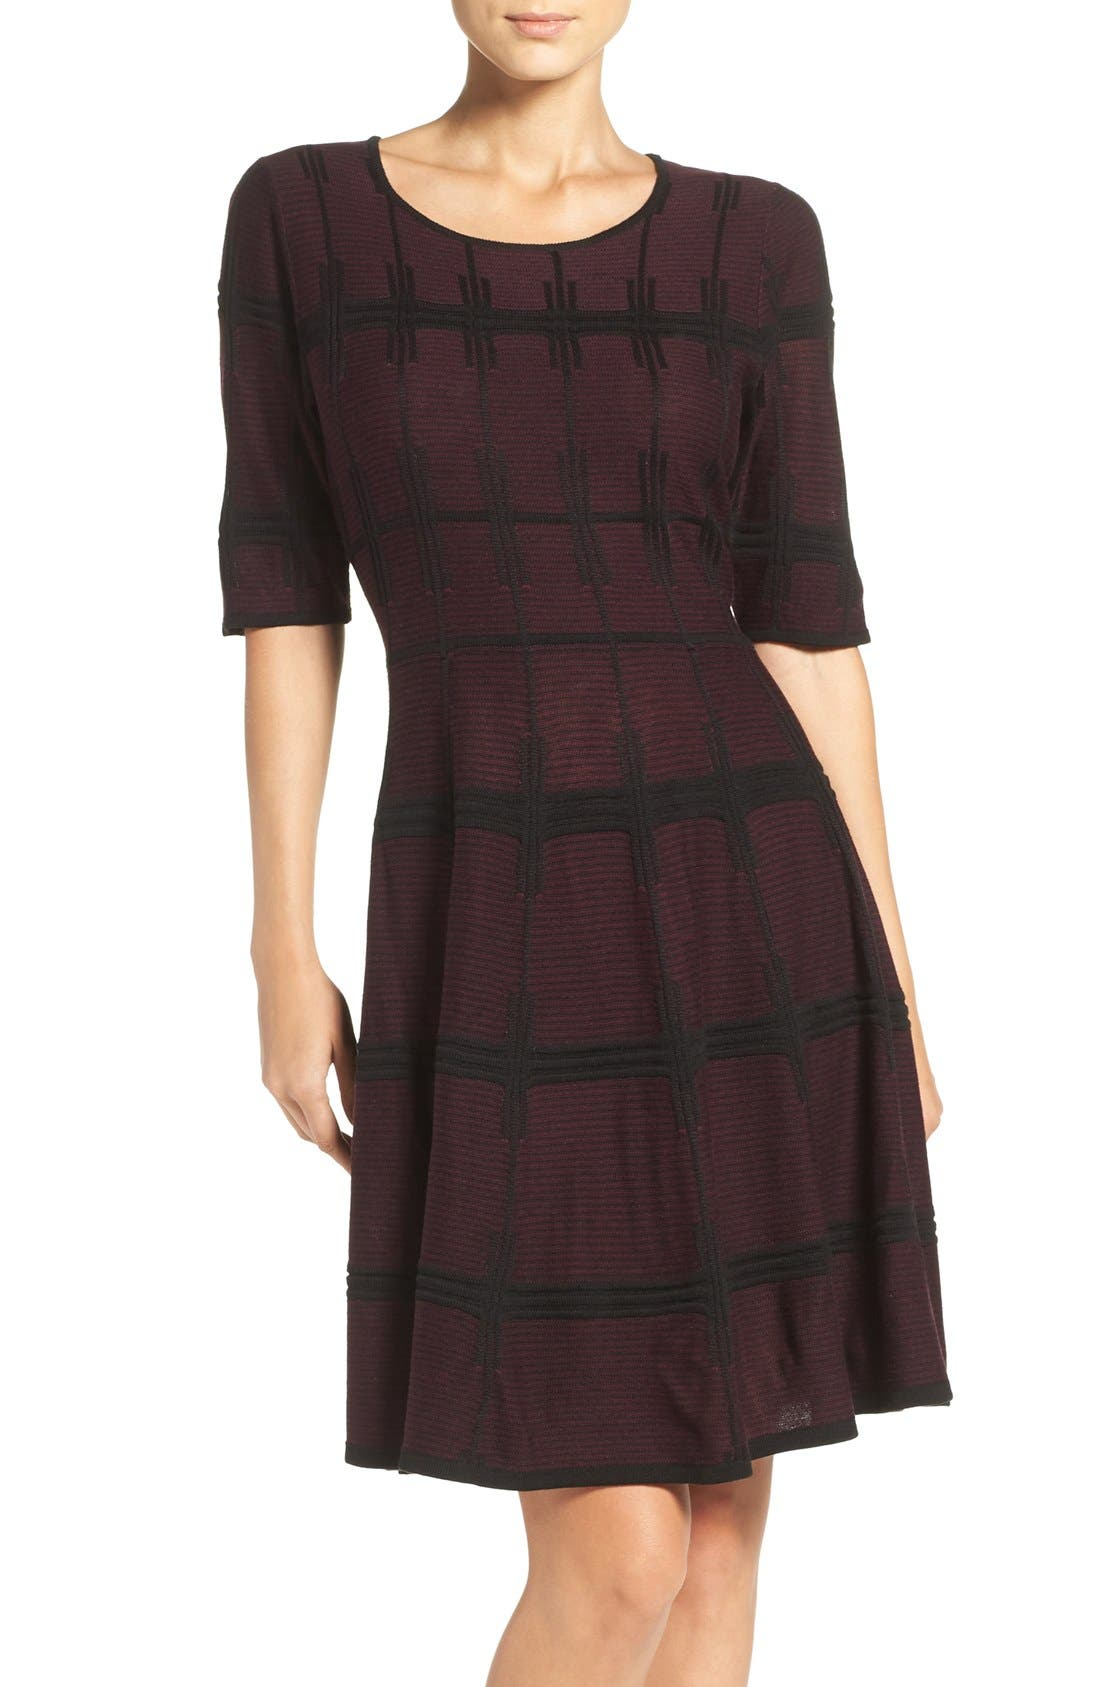 Alternate Image 1 Selected - Ivanka Trump Plaid Sweater Knit Fit & Flare Dress